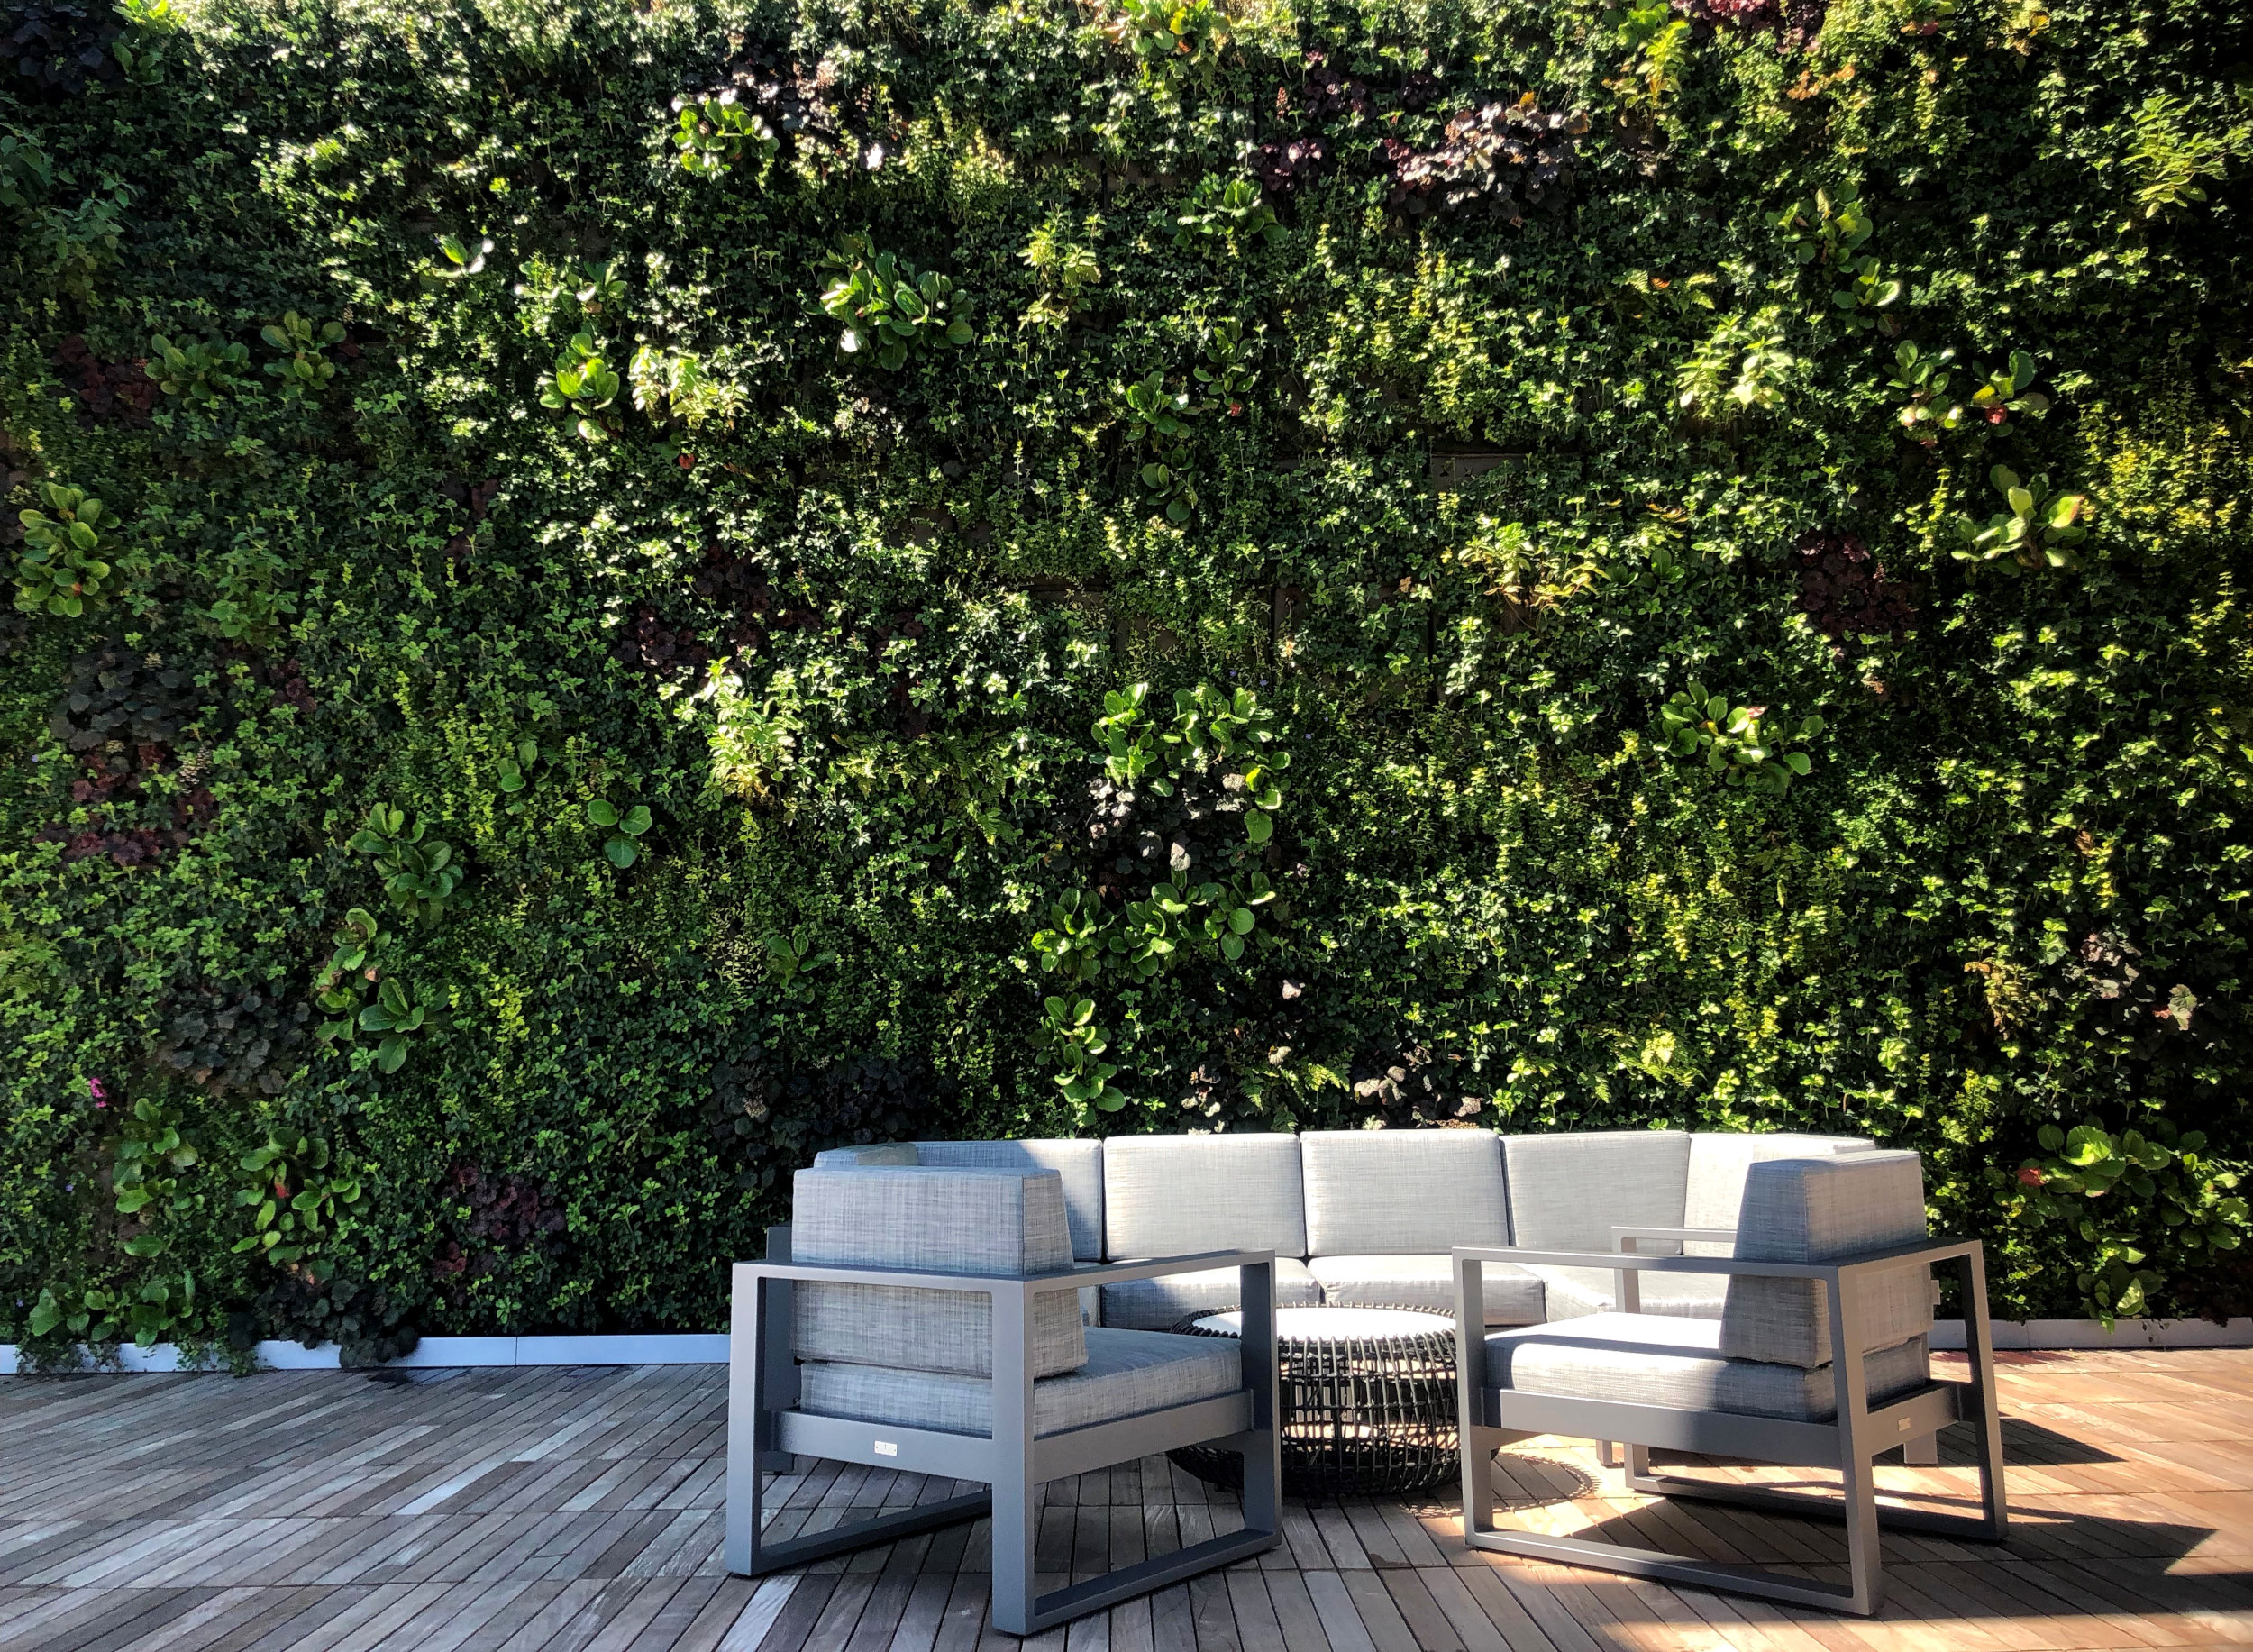 Outdoor Living Walls - An outdoor green wall enables you to create greenery in the urban area, where there is otherwise little space for plants. Thanks to the flexible system and wide variety of plants in the Sempergreen wall, almost every wall is suitable to become a living wall.